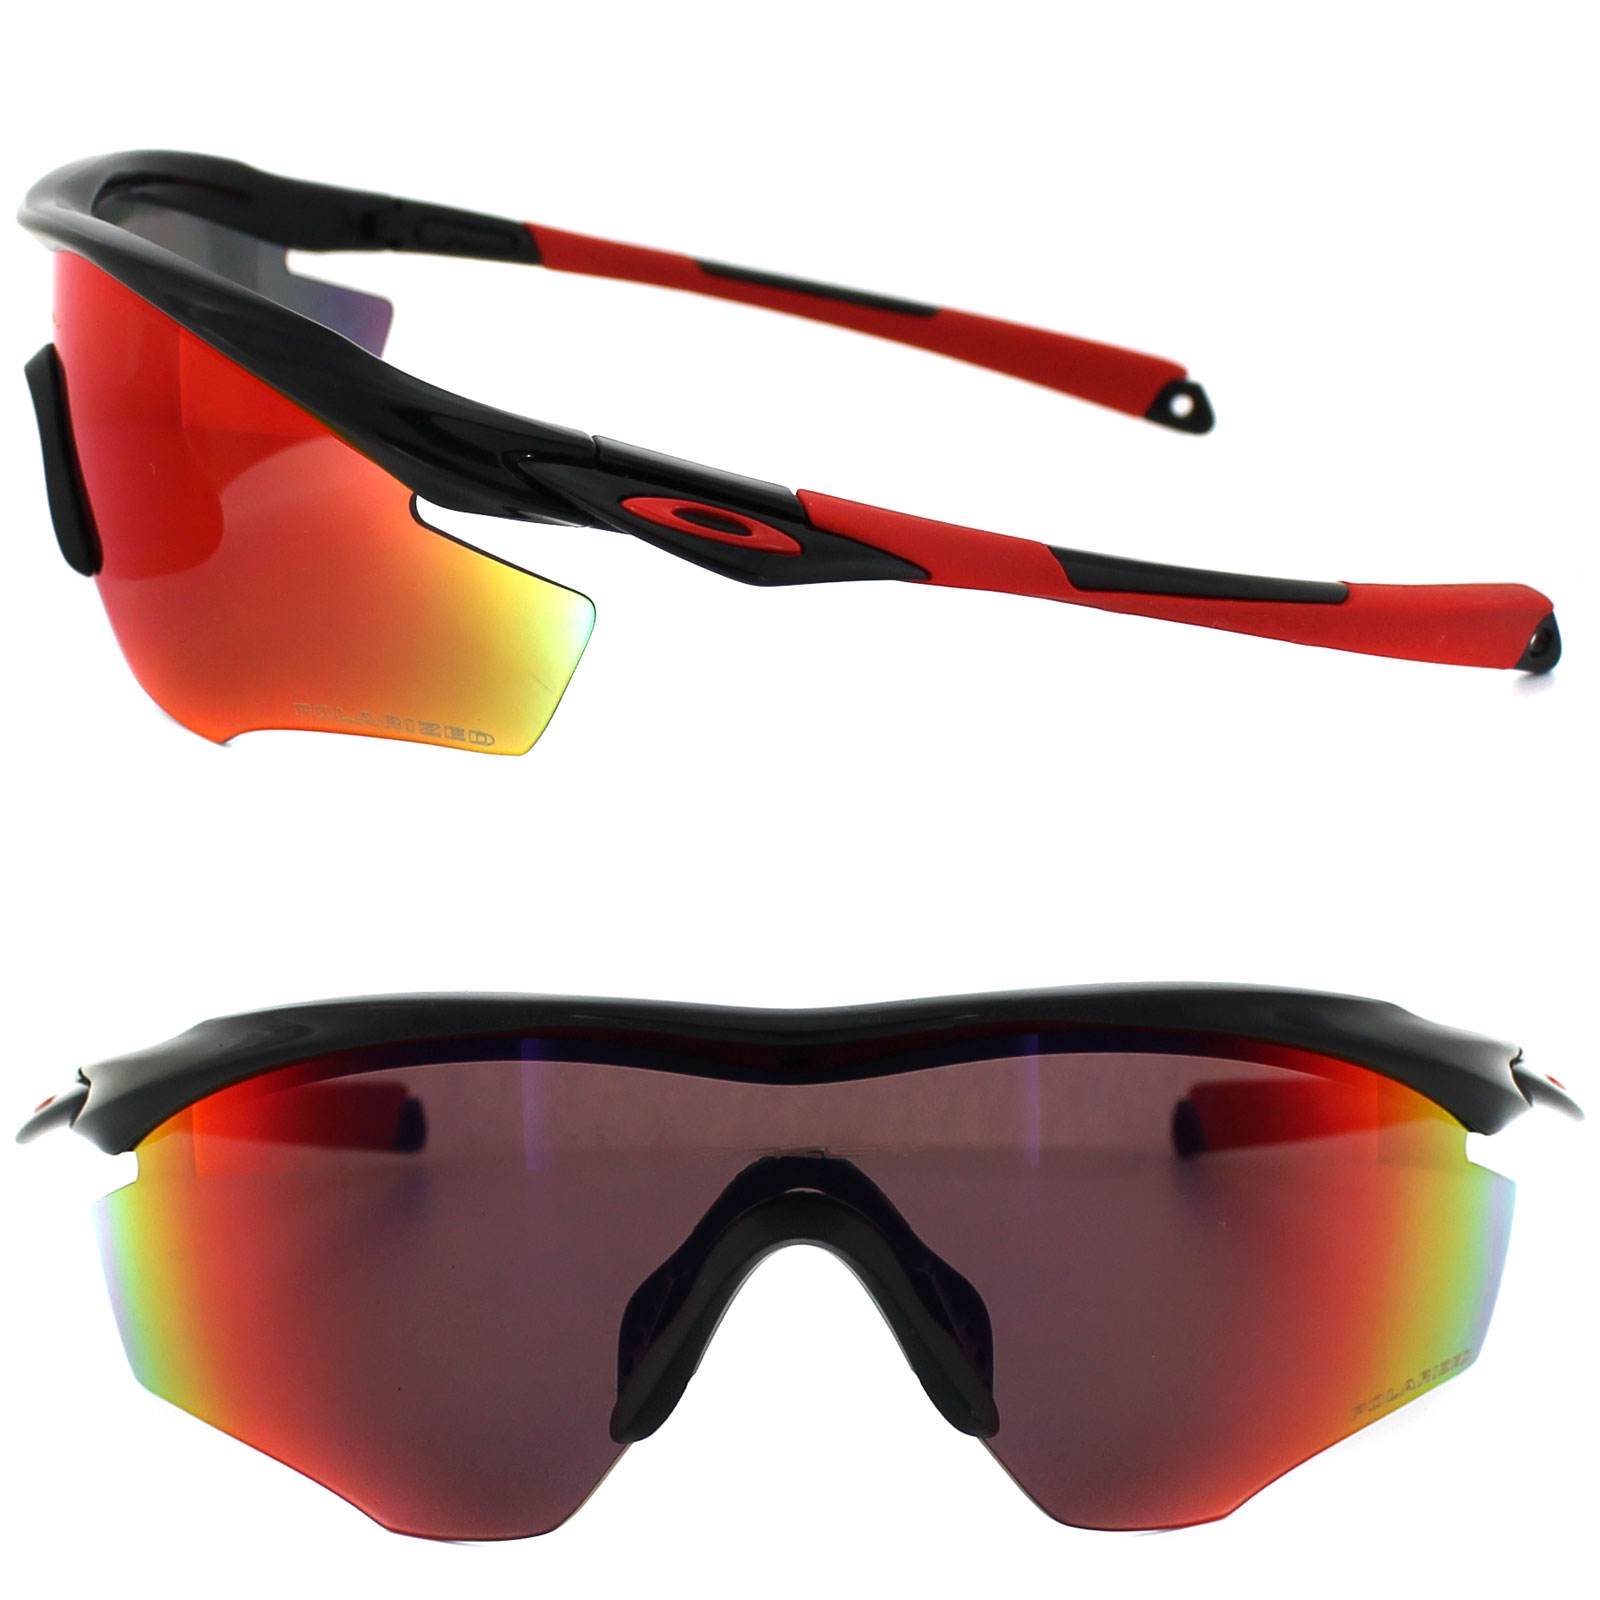 sentinel oakley sunglasses m2 frame oo9212 06 polished black oo red iridium polarized